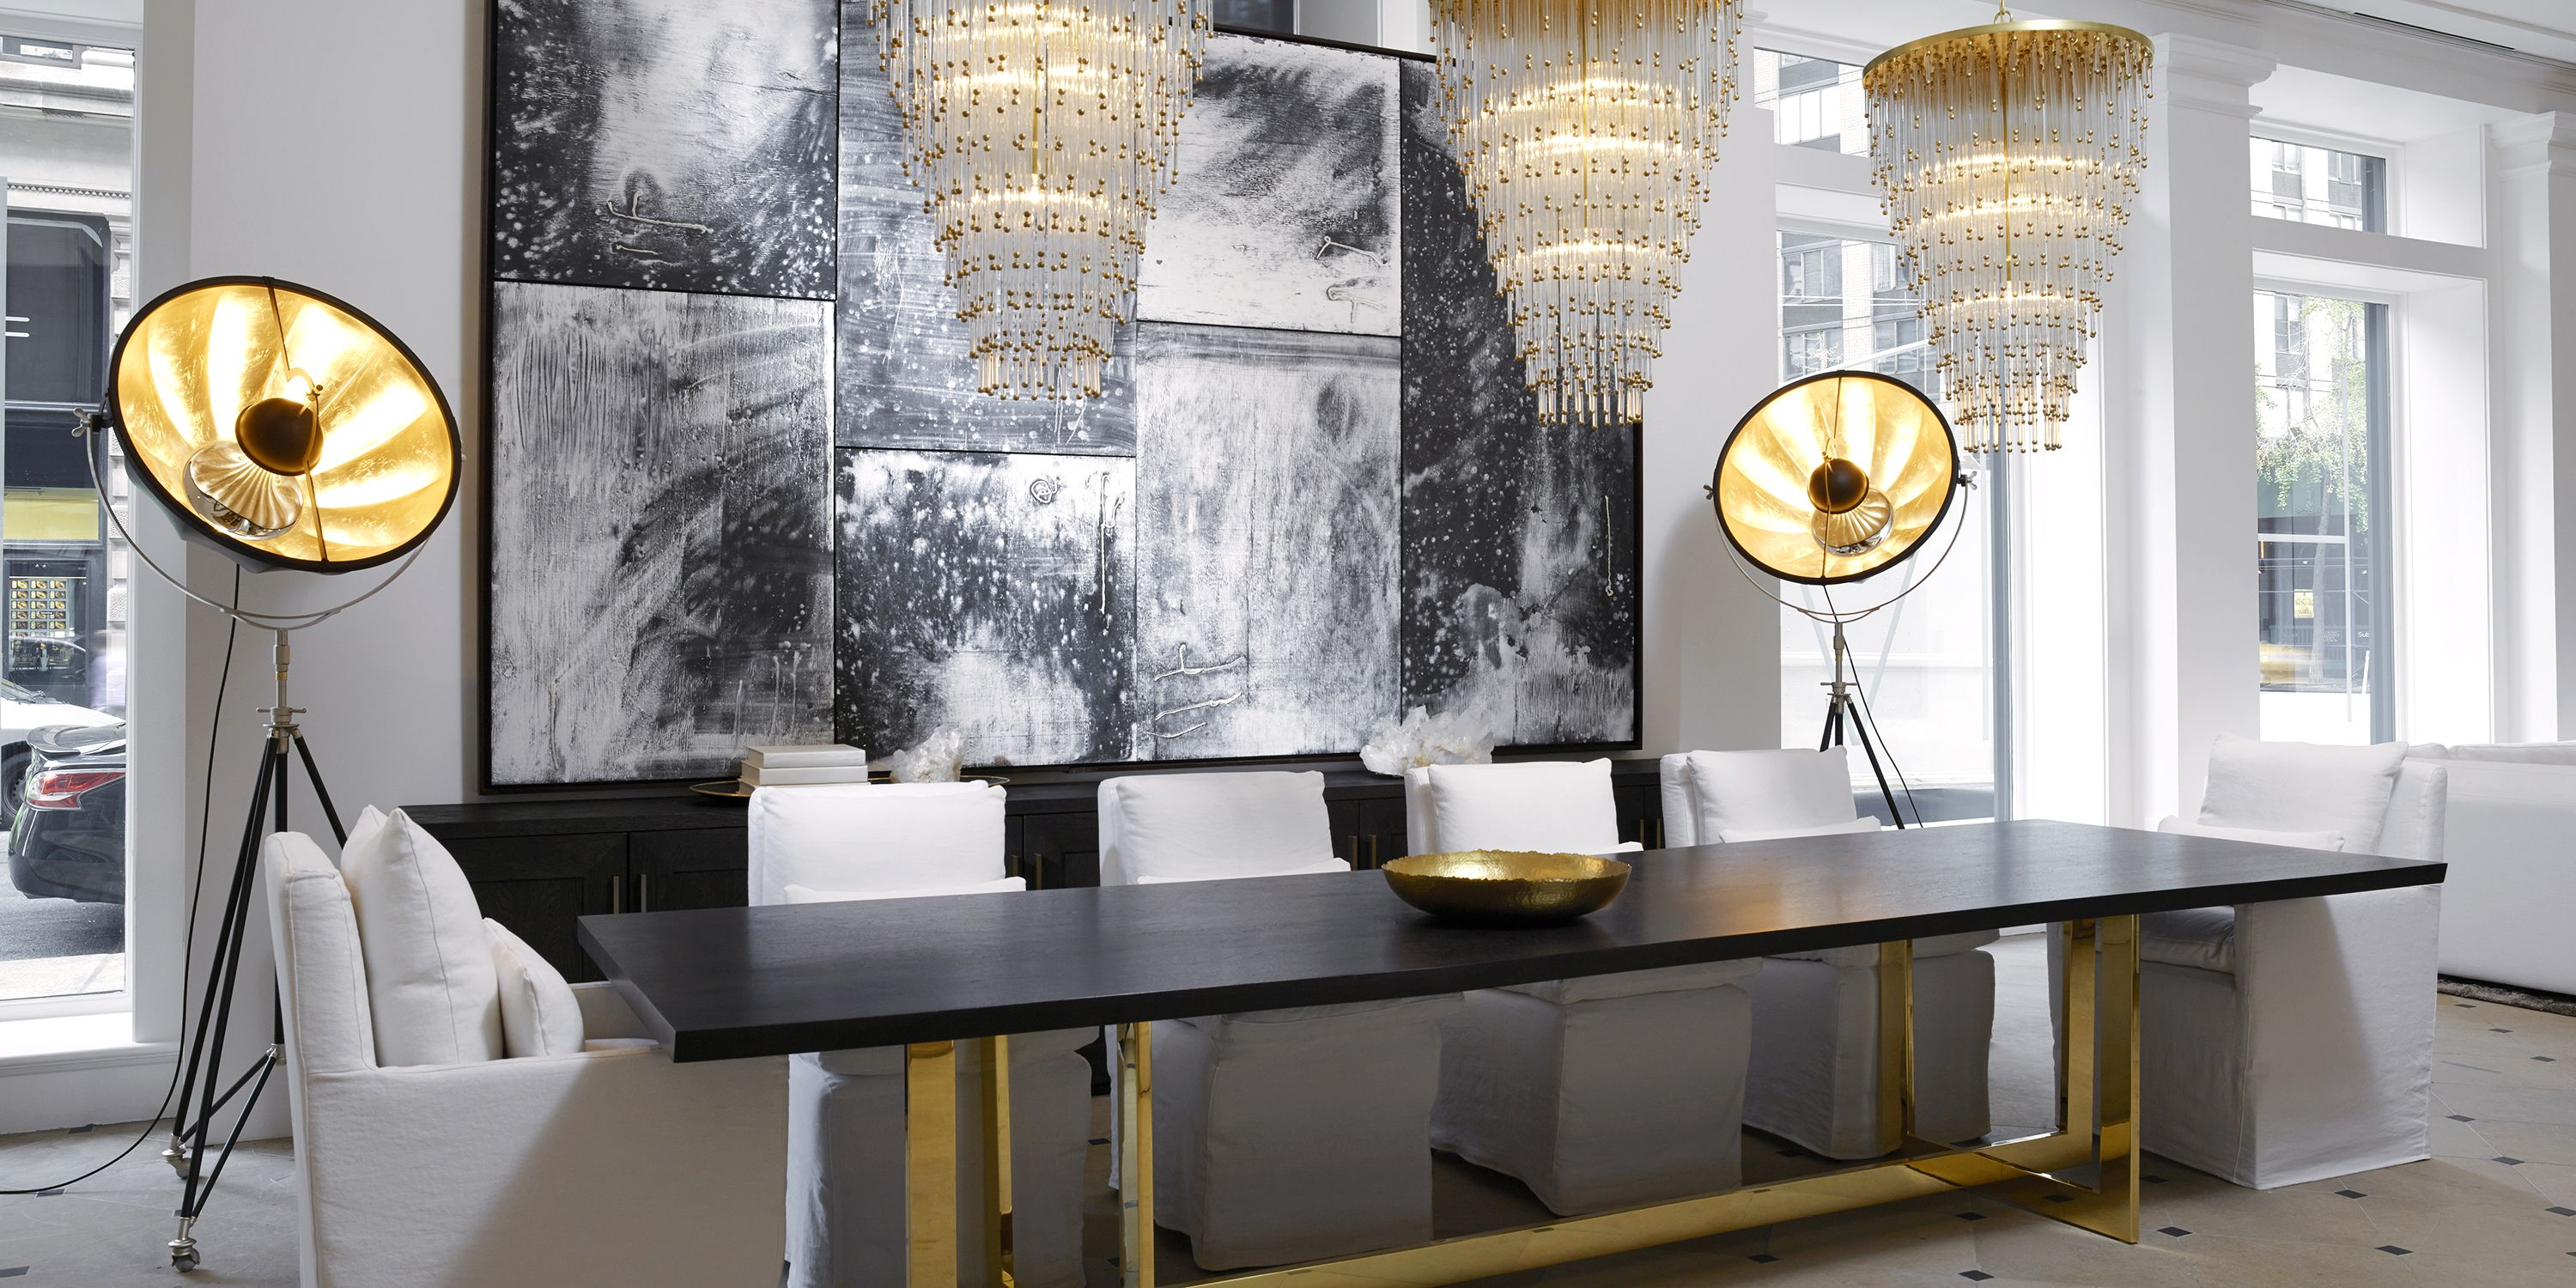 Restoration Hardware Introduces New Multi Channel Business Branch